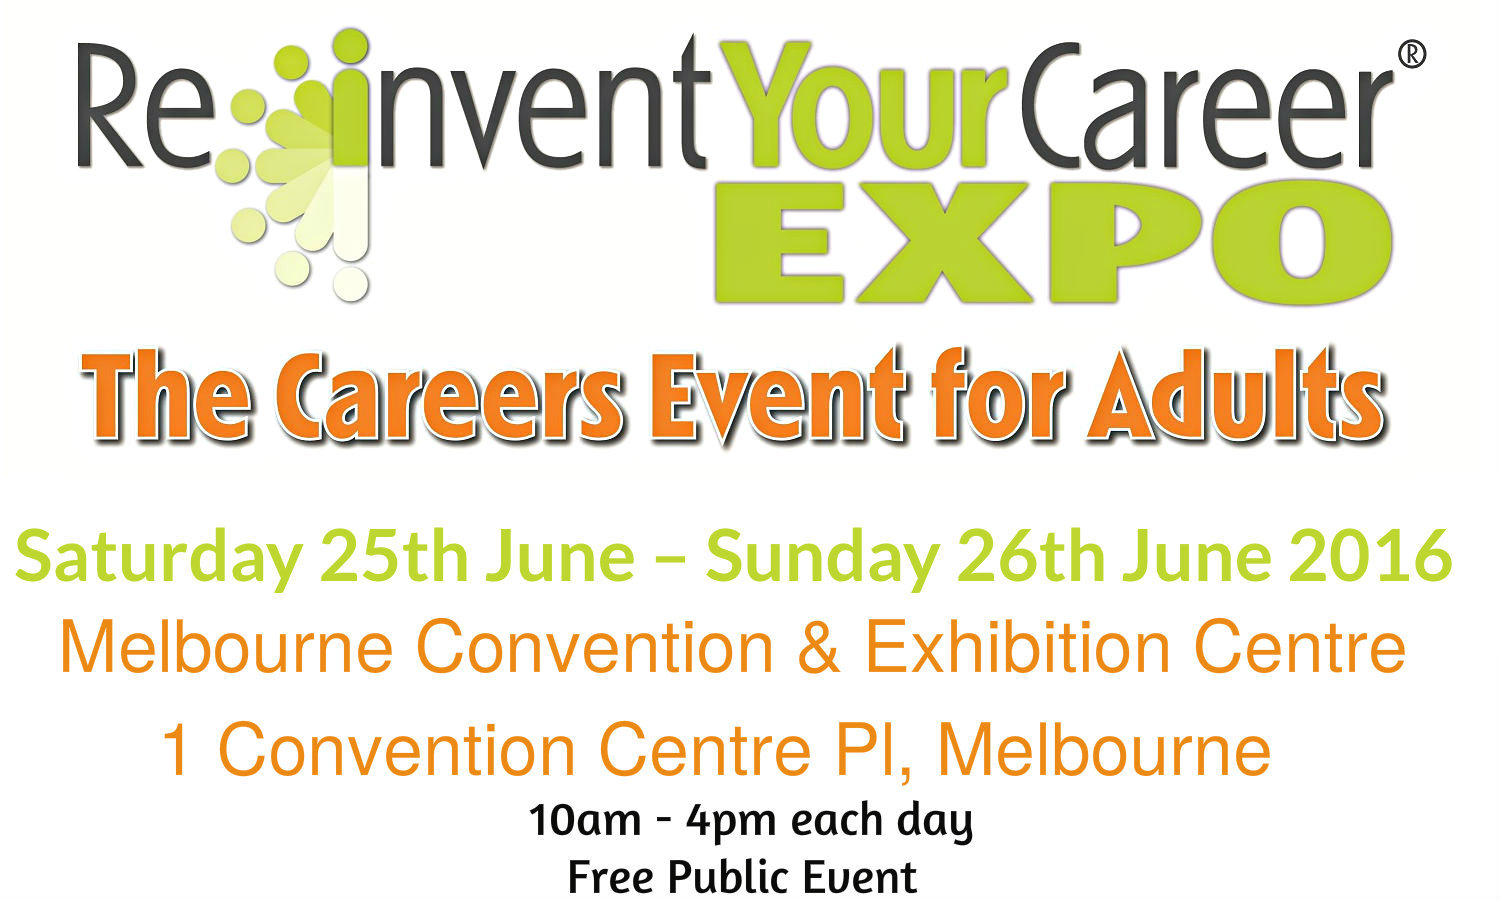 reinvent your career expo 2016